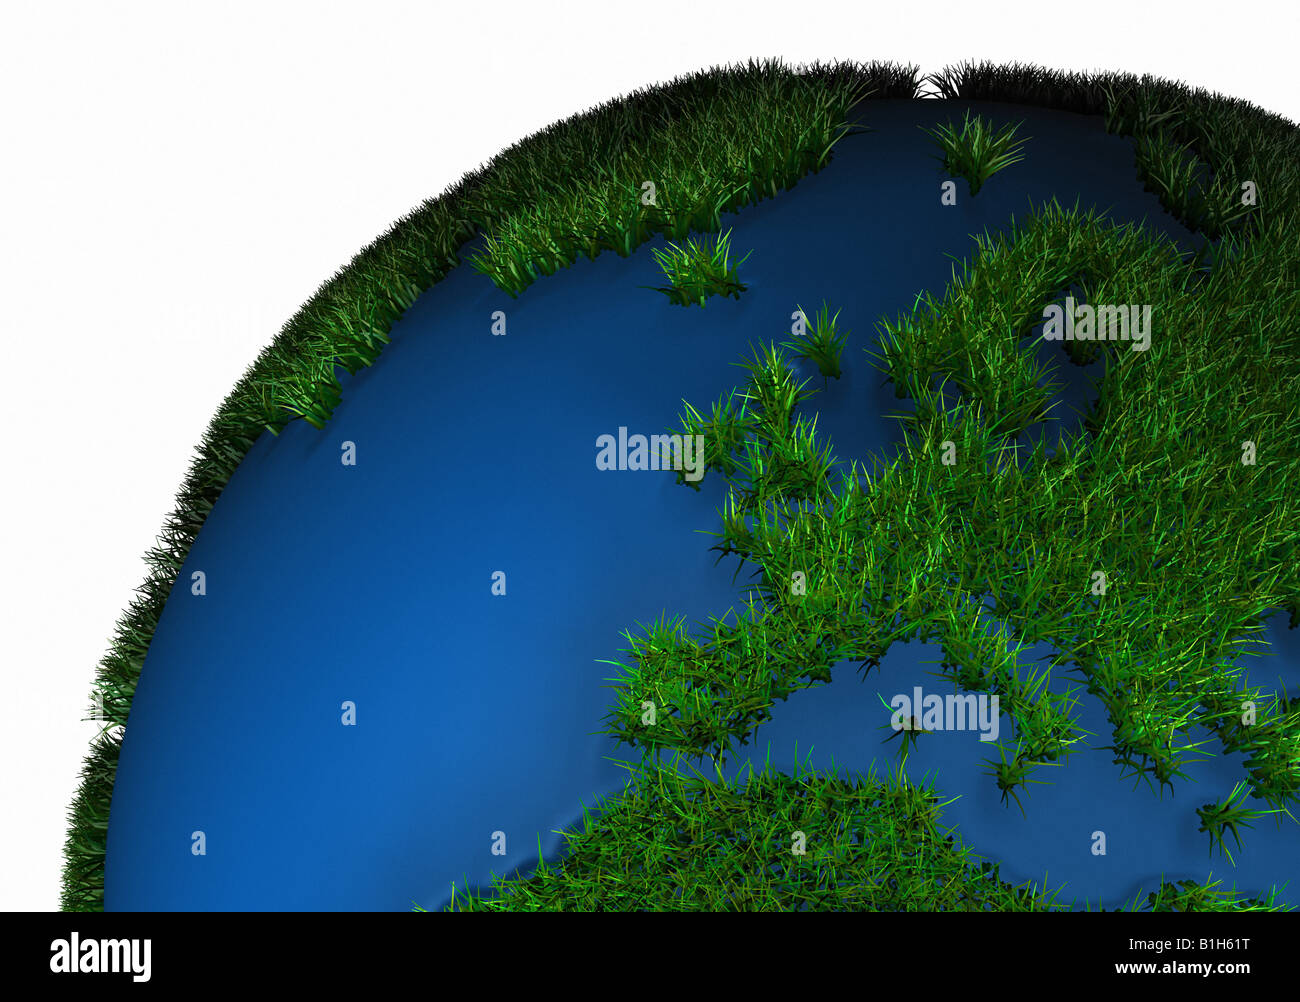 Grass covered globe - Stock Image